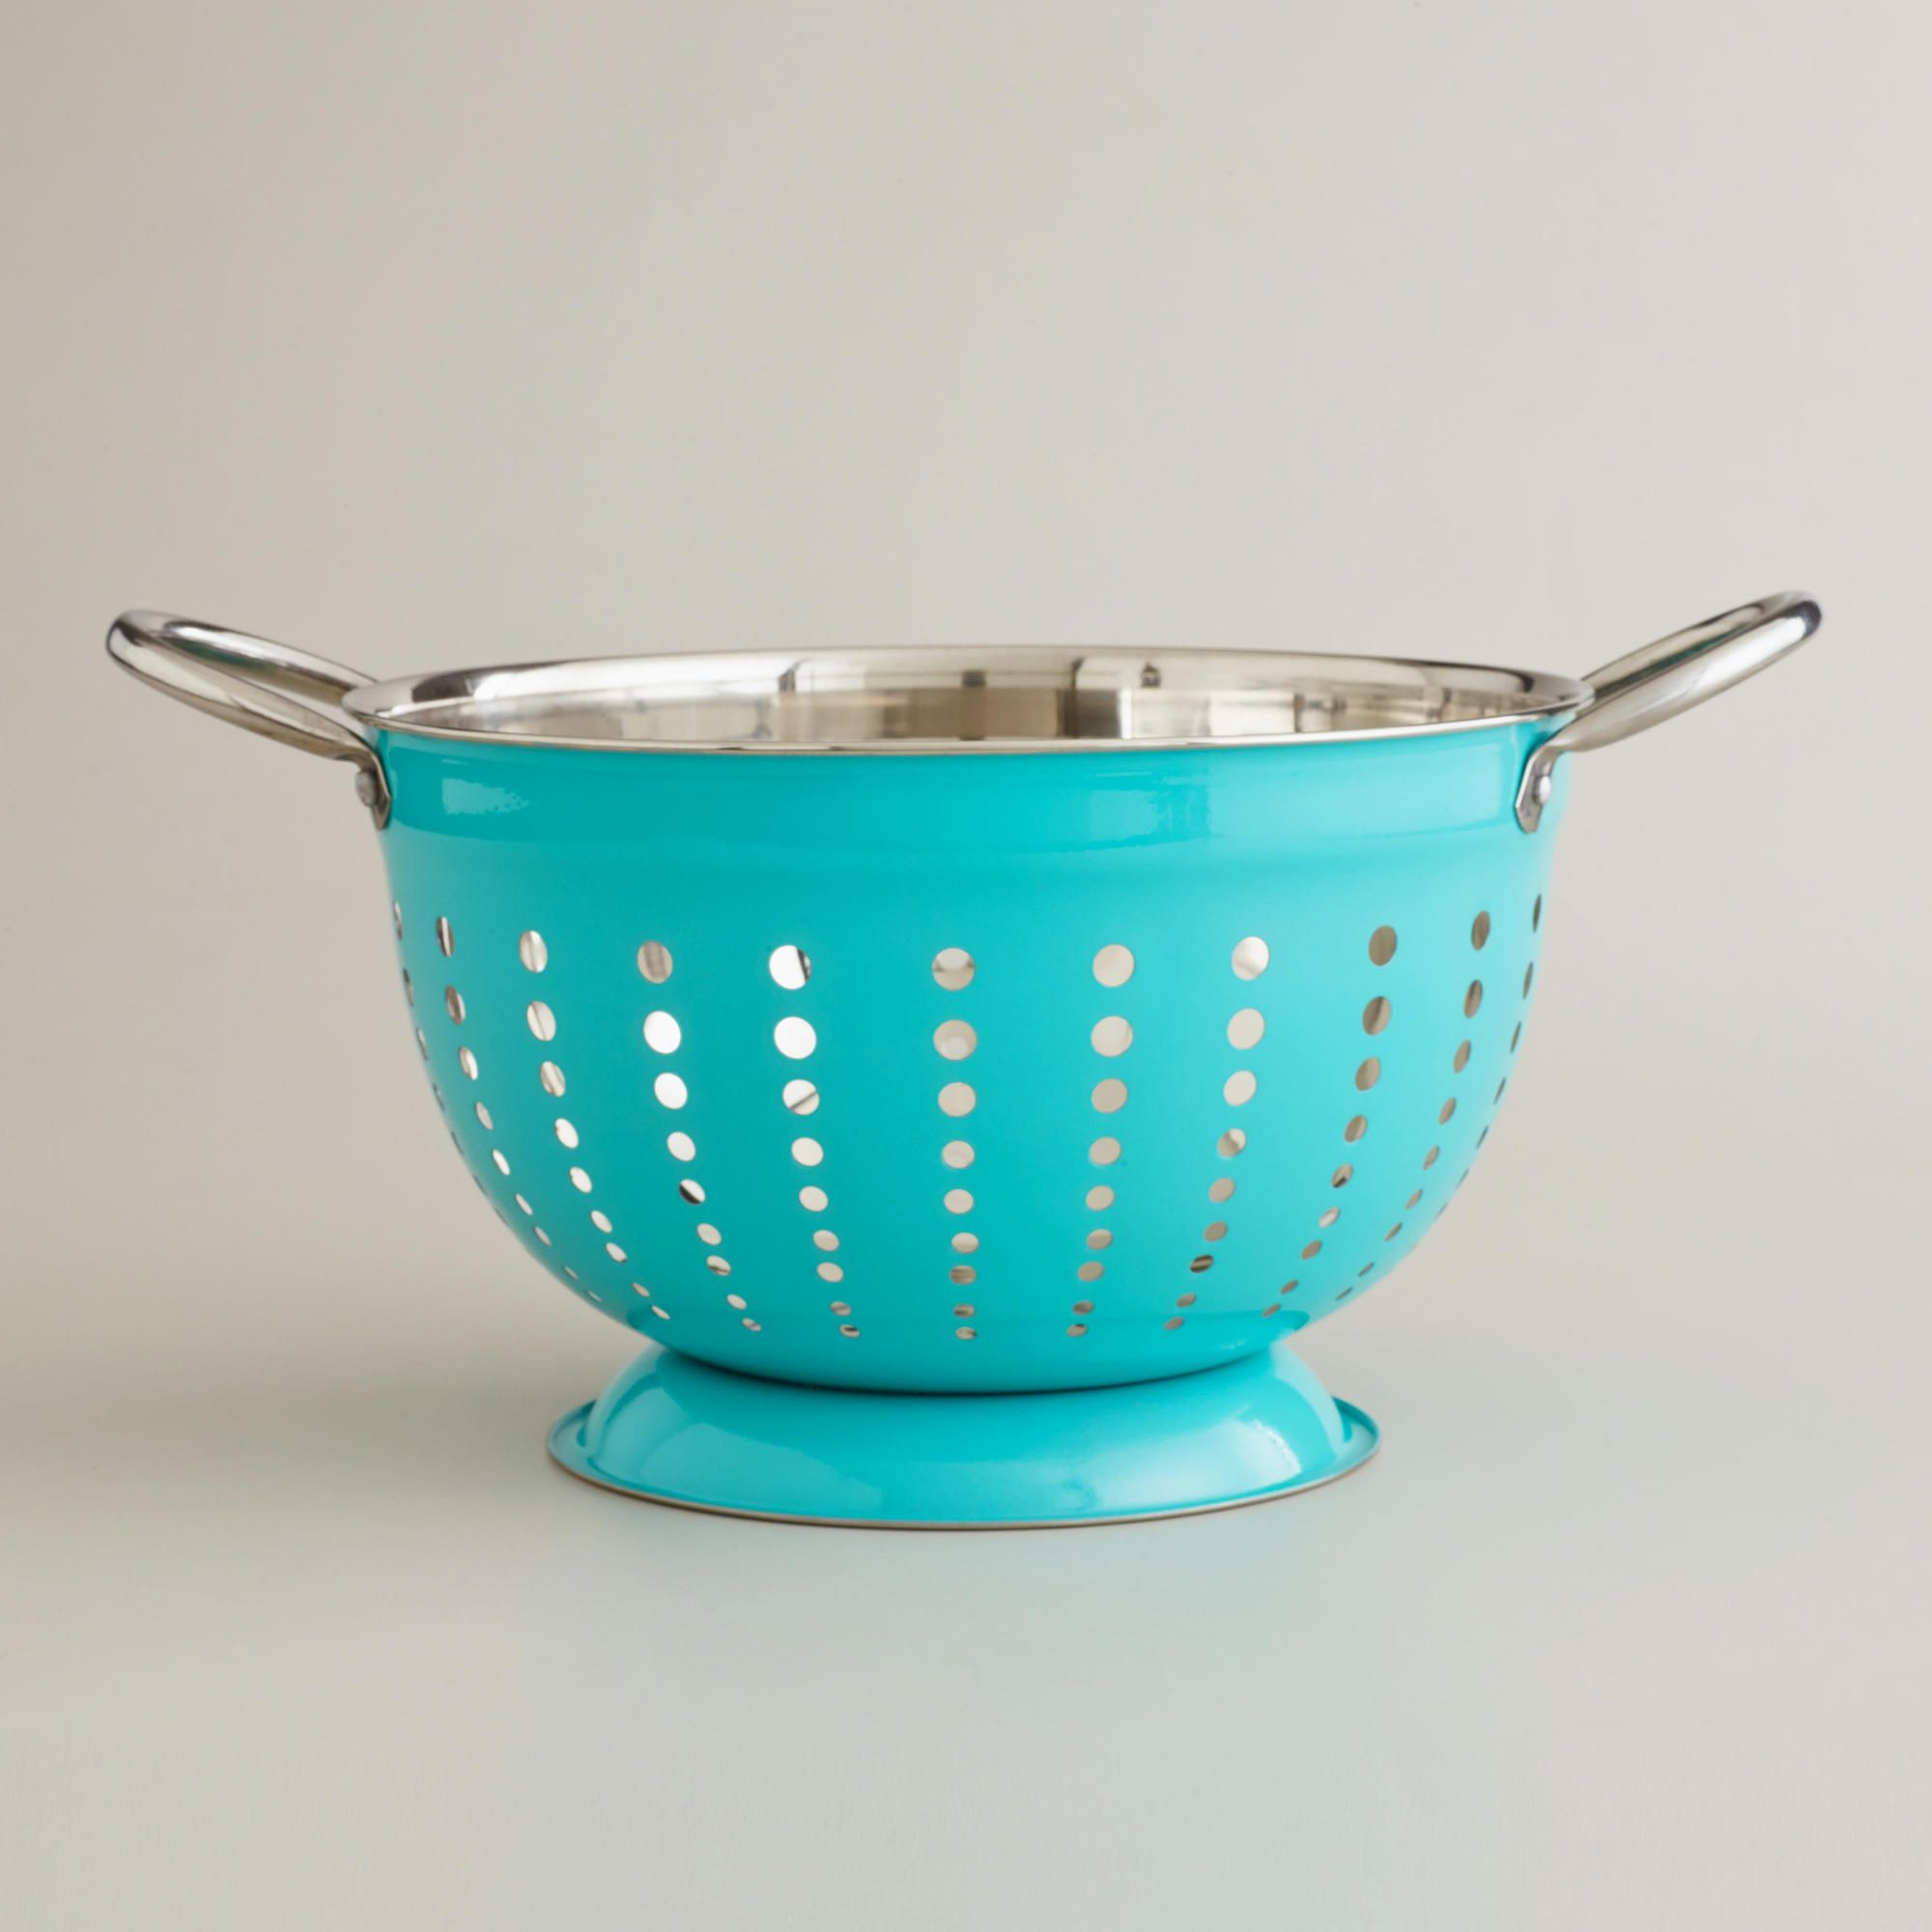 Now this is a turquoise colander! Ordered a different brand a while ...